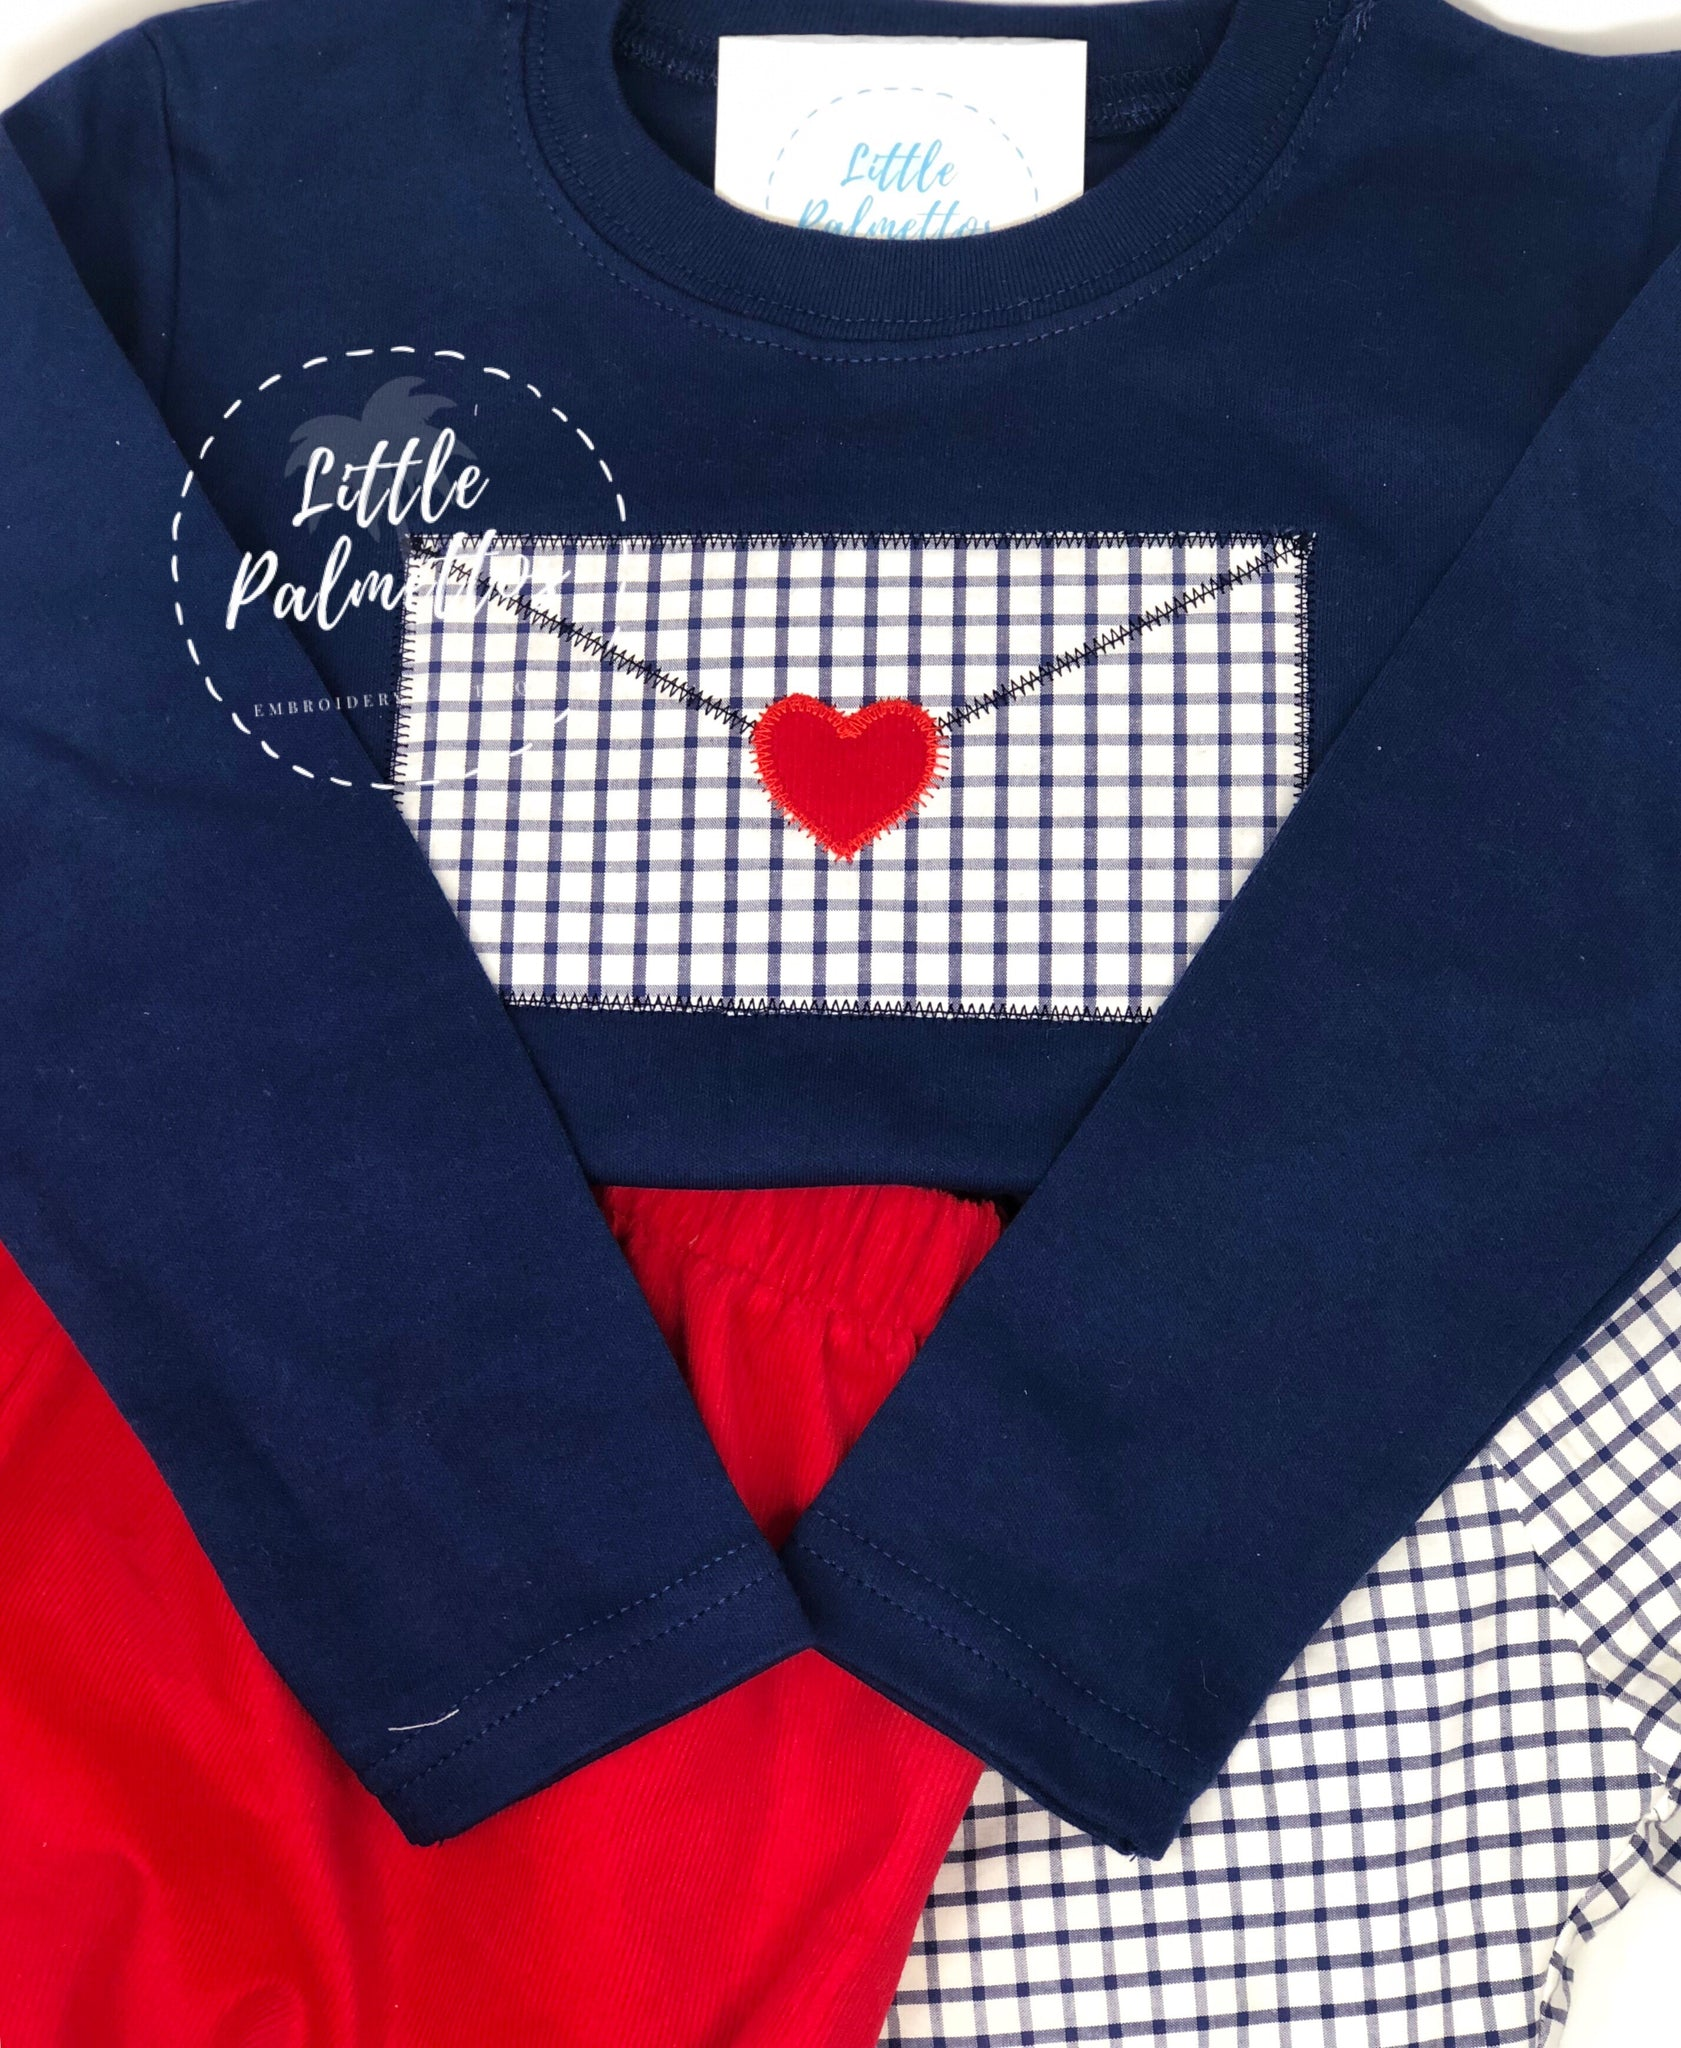 Boys Envelope Valentine's Shirt